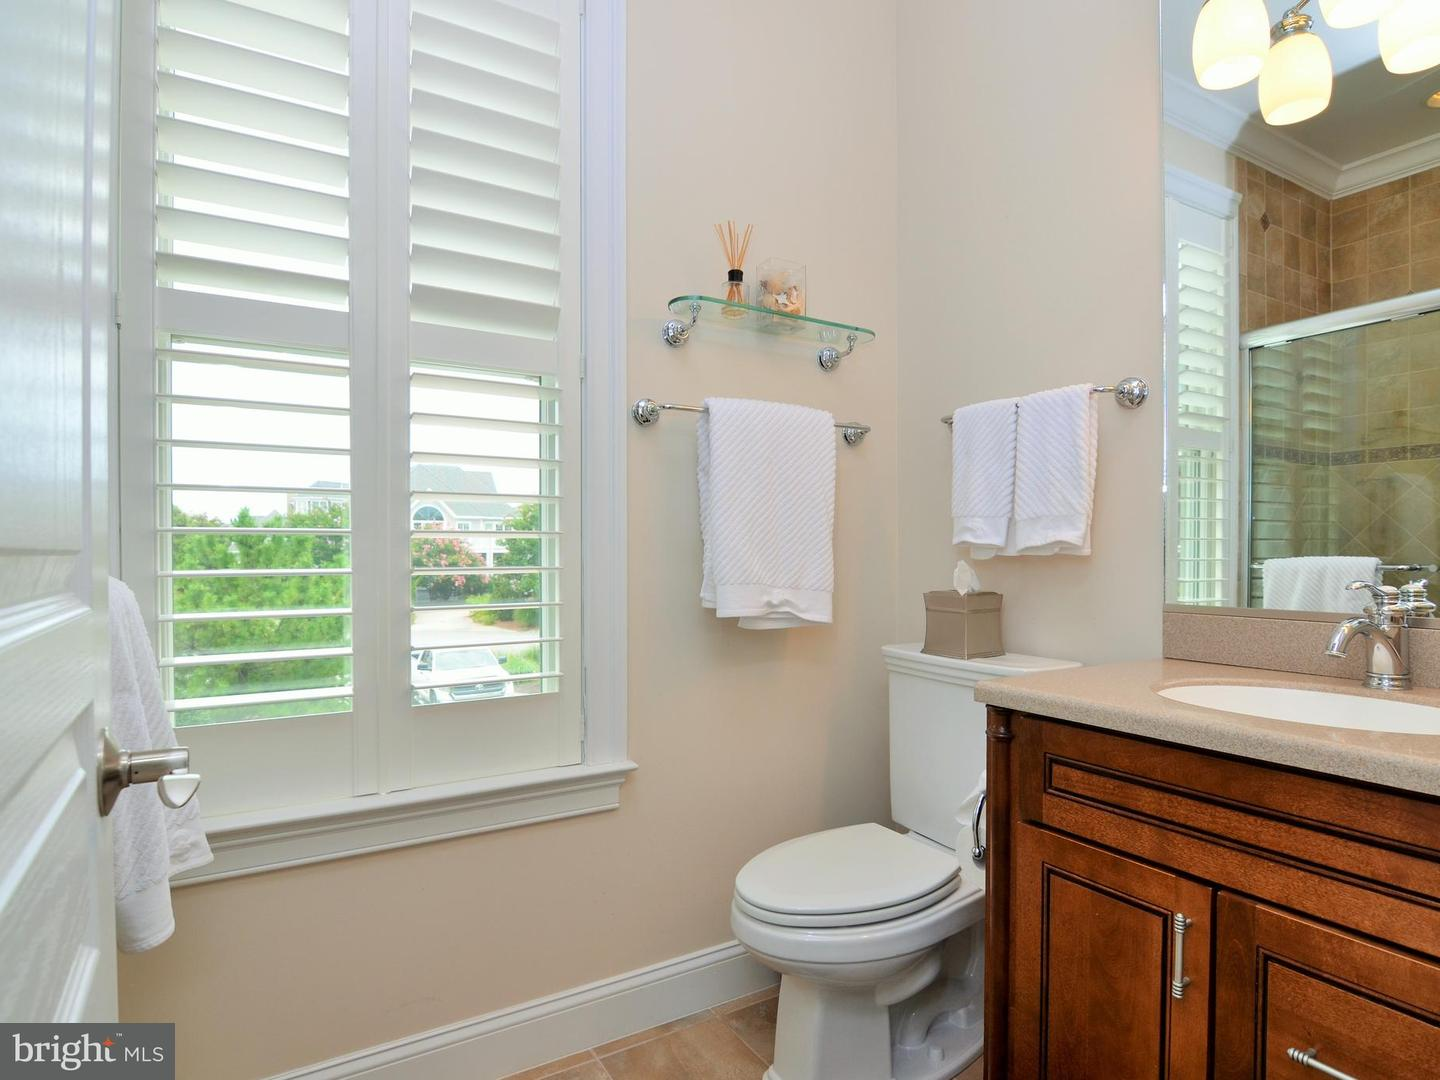 1002293530-300500807427-2018-09-25-15-08-25 31 Hall Ave | Rehoboth Beach, De Real Estate For Sale | MLS# 1002293530  - Suzanne Macnab